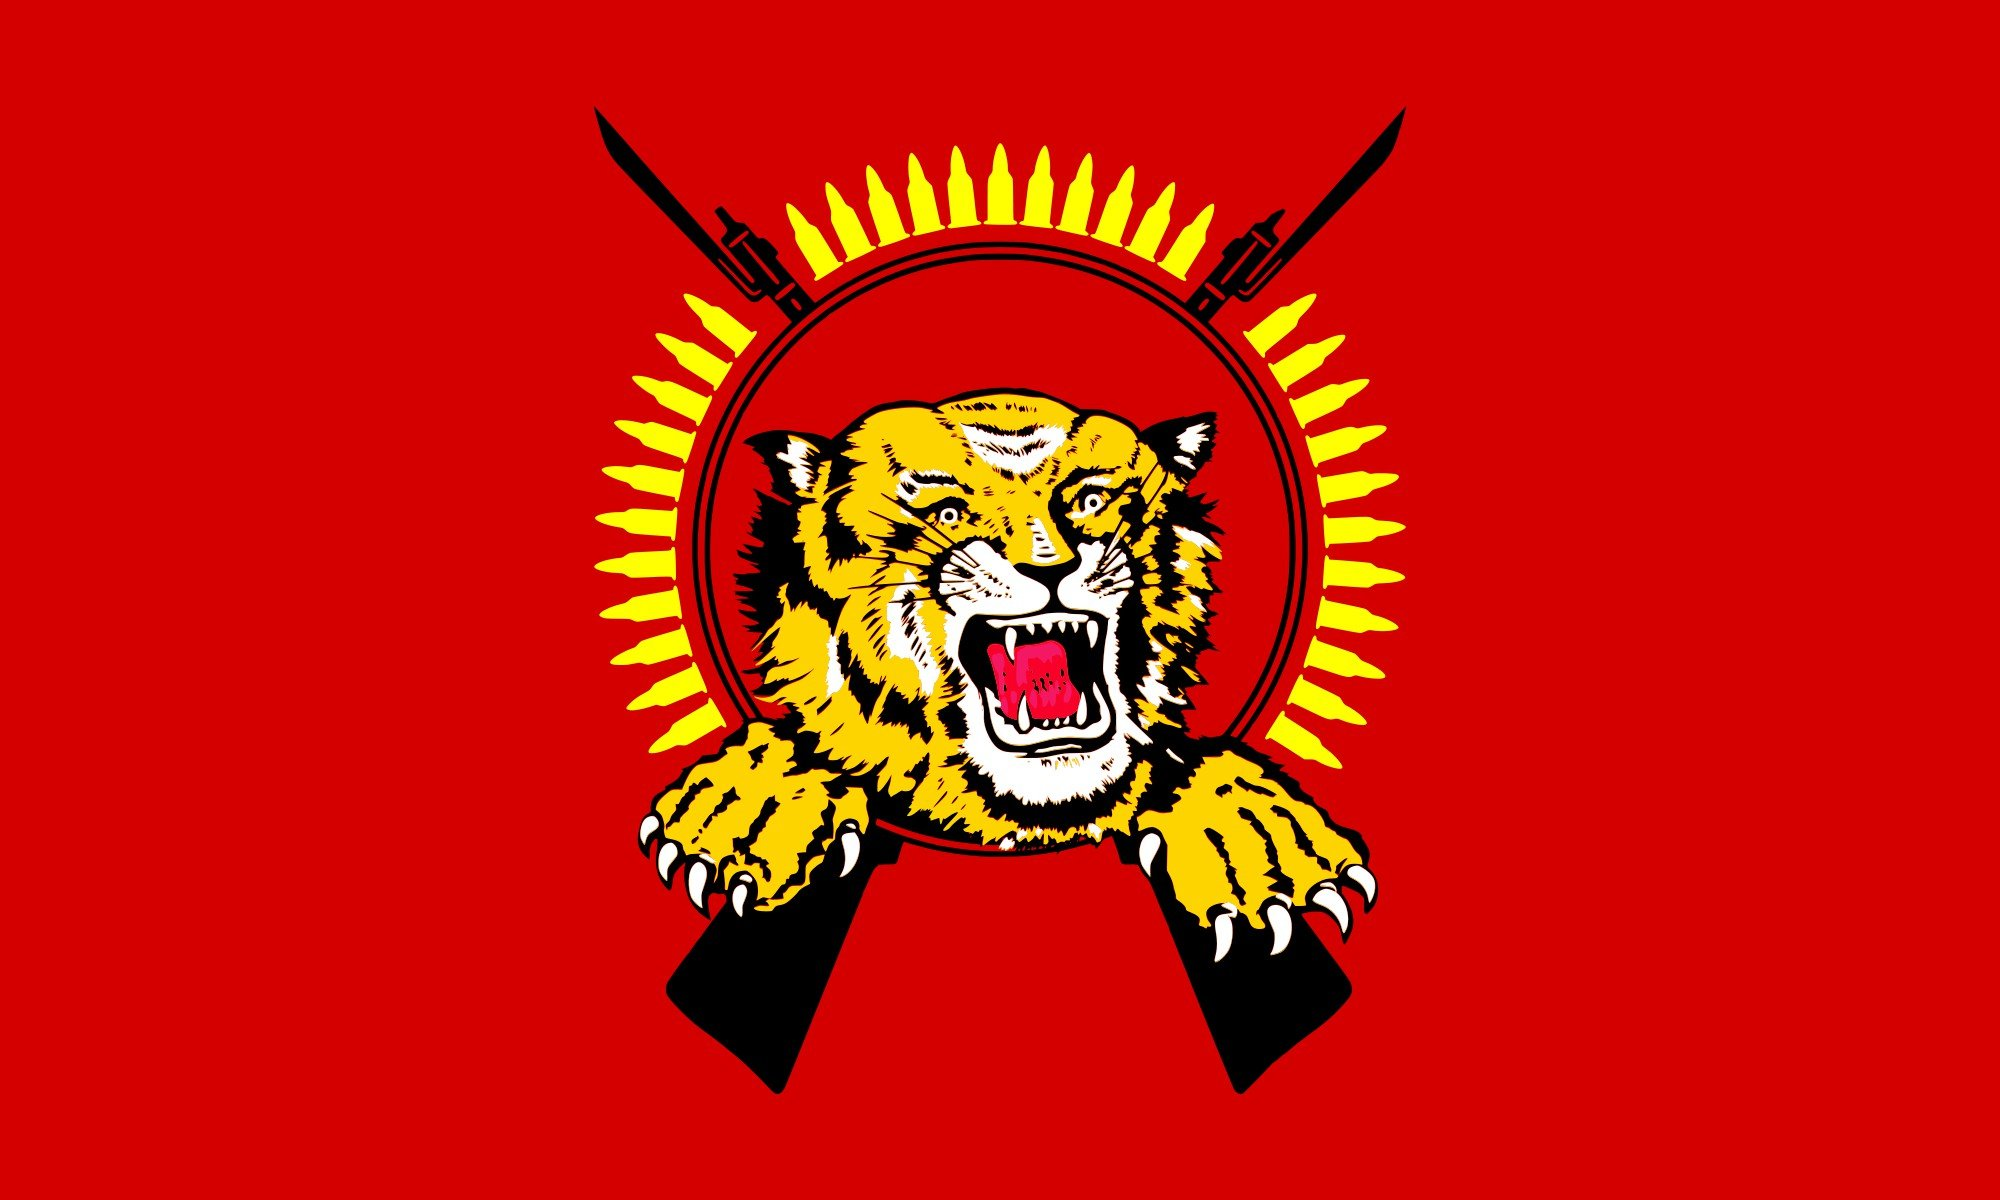 tamil tigers Get today's live news on tamil tigers: current events, photos, infographics and al jazeera's exclusive stories from eyewitnesses.